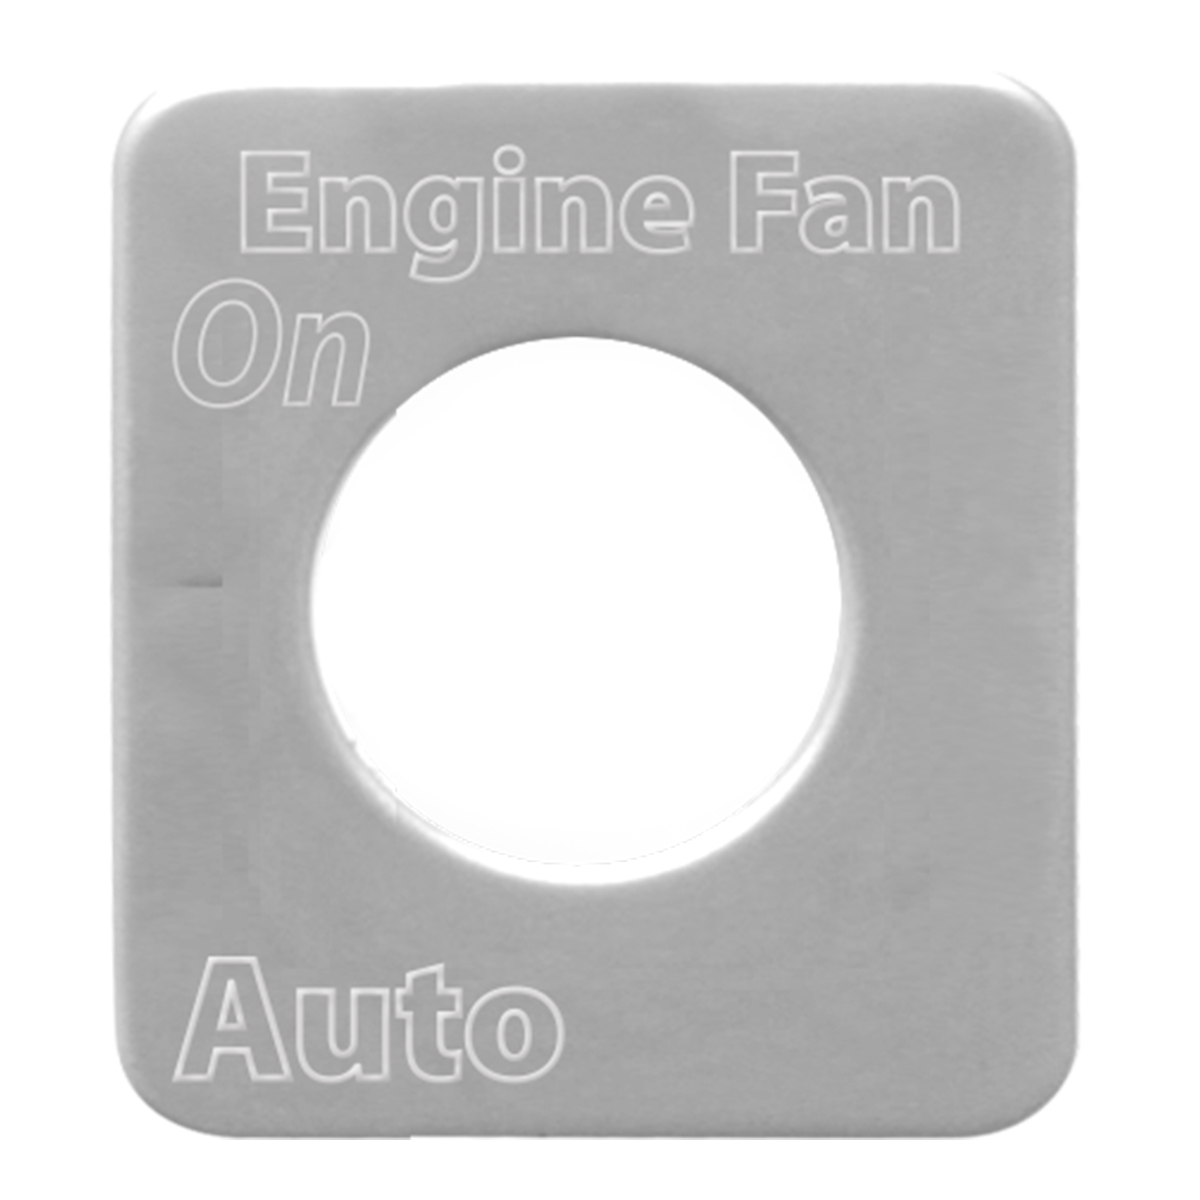 68537 Stainless Steel Engine Fan Switch Plate for KW